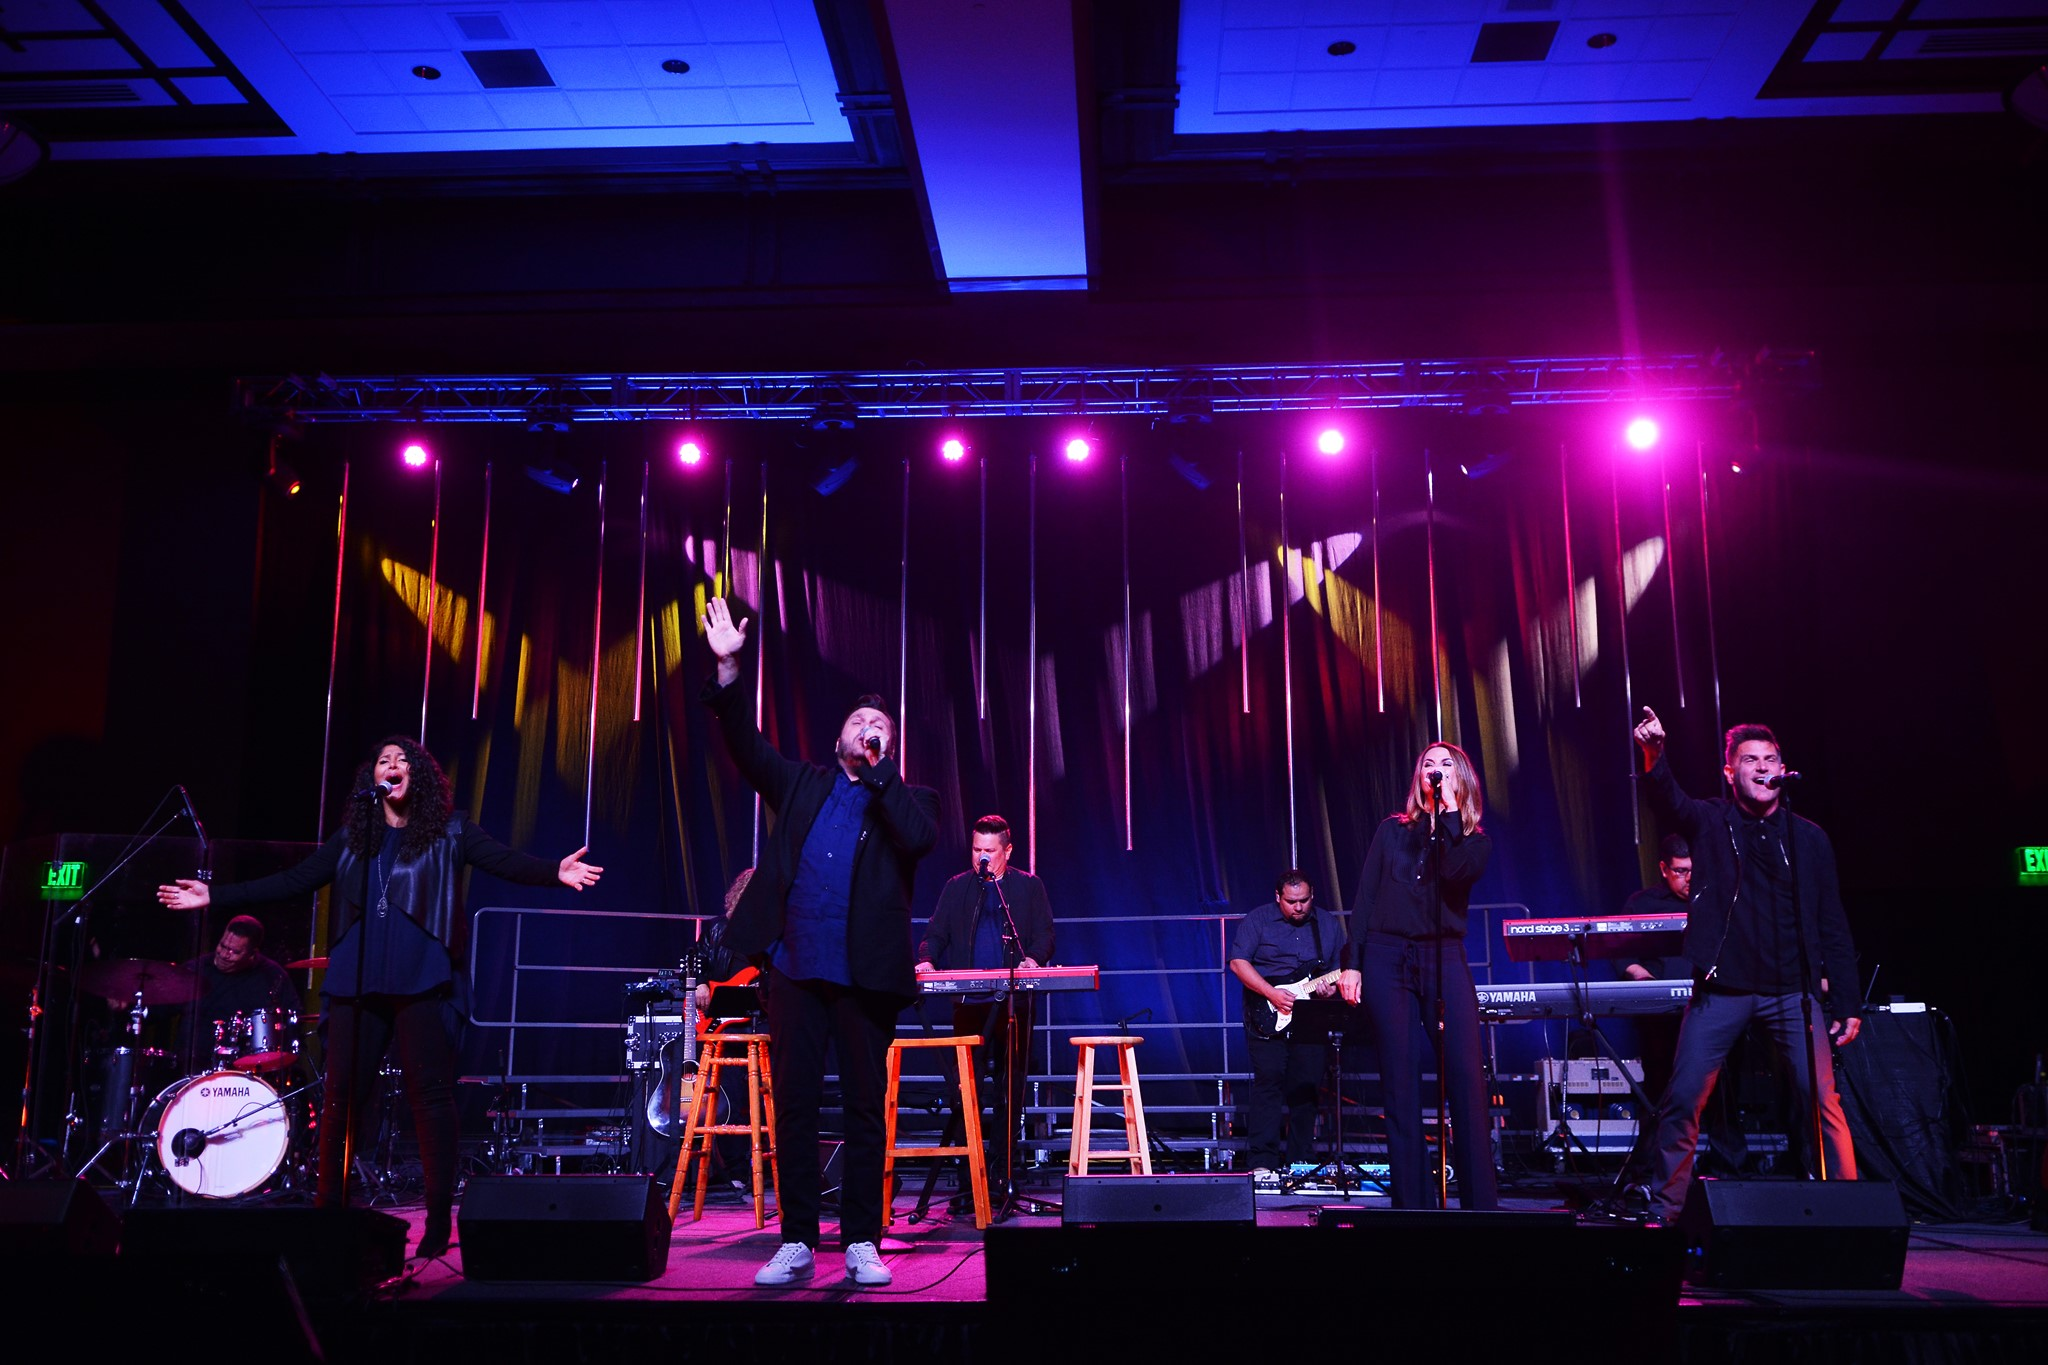 AVALON Performs at LifeWay's WorshipLife Conference in Gatlinburg, TN on Tuesday, June 25, 2019